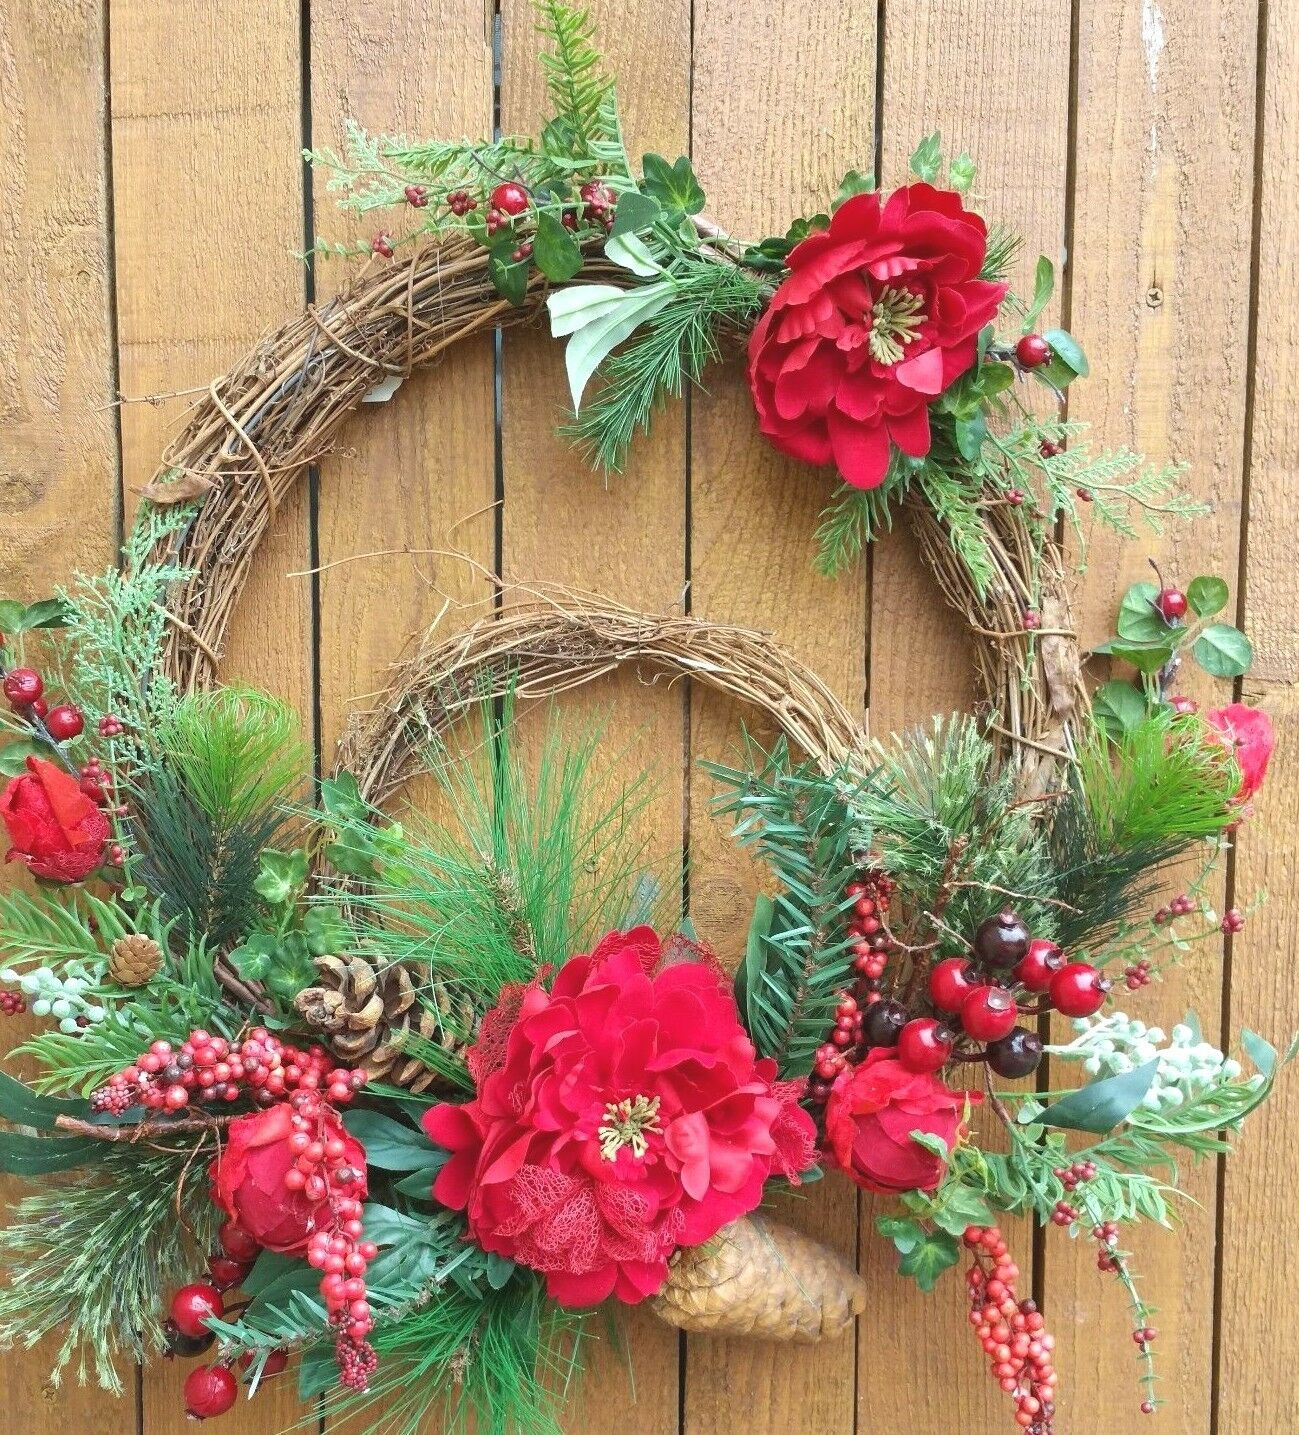 21   Double Christmas Wreath rot Peonies Pine Cones and Grünery